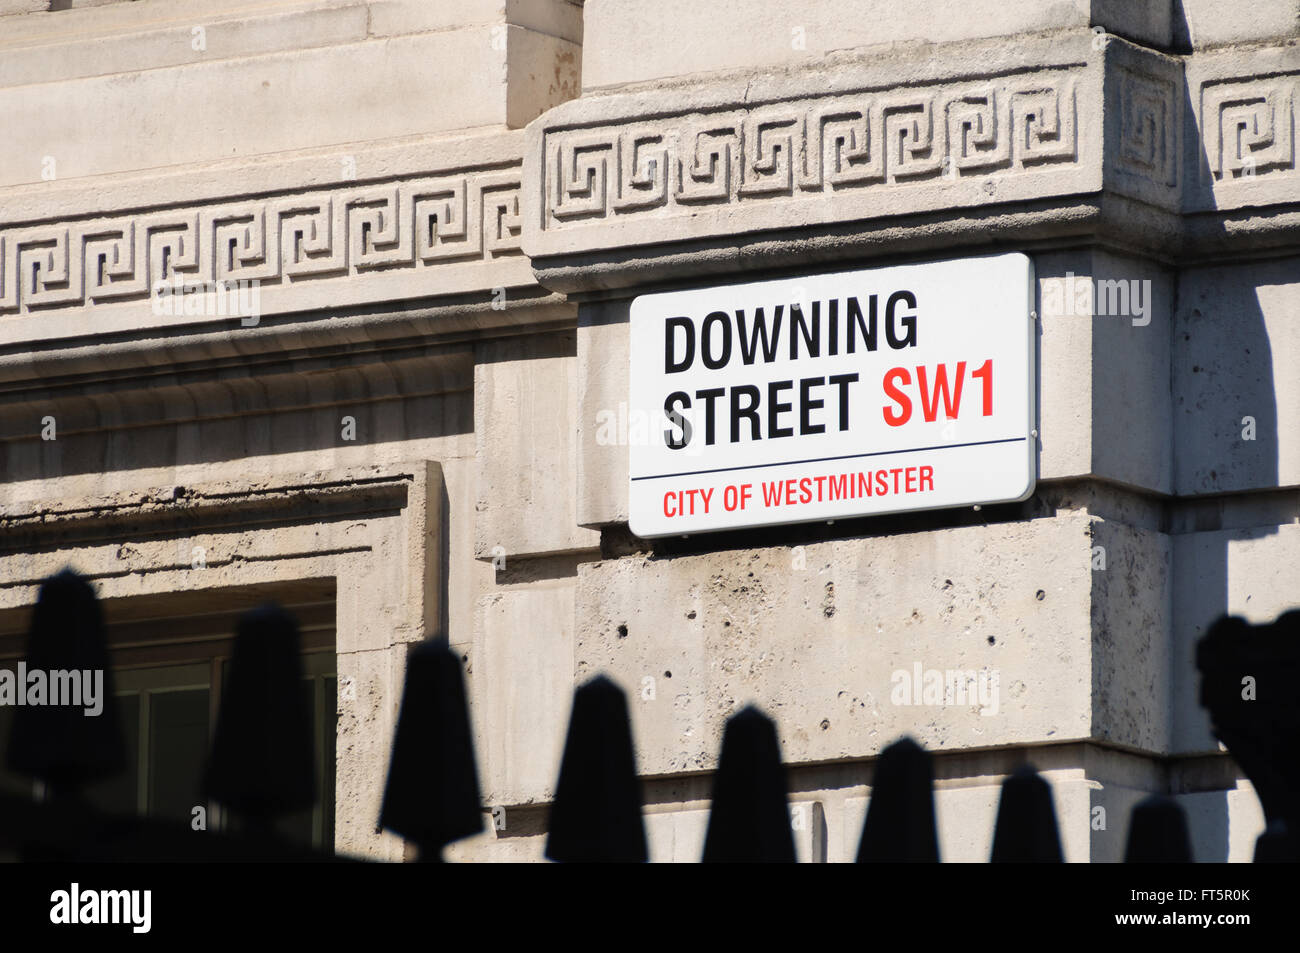 Downing Street sign in London, UK - Stock Image